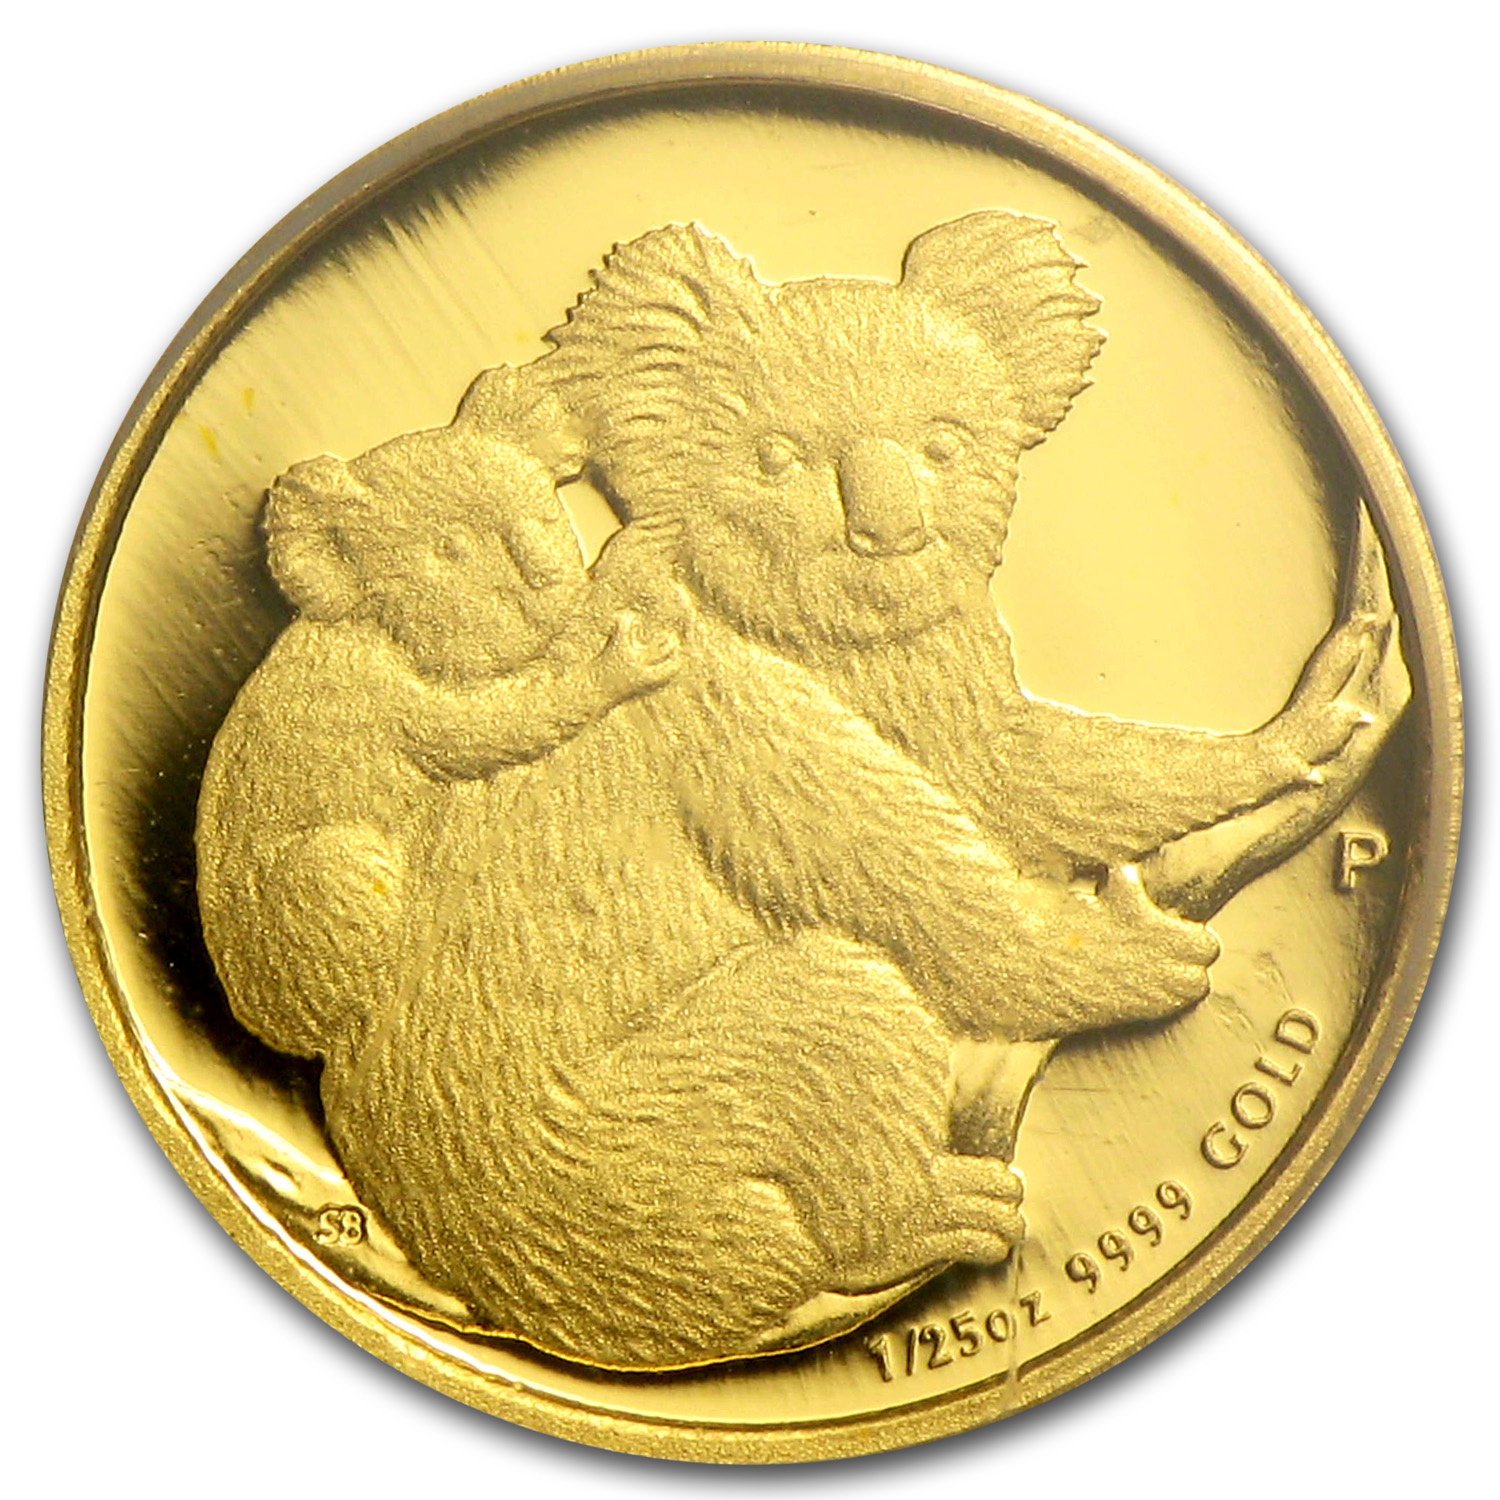 2008 Australia 1/25 oz Gold Koala Gem Proof PCGS (FS)